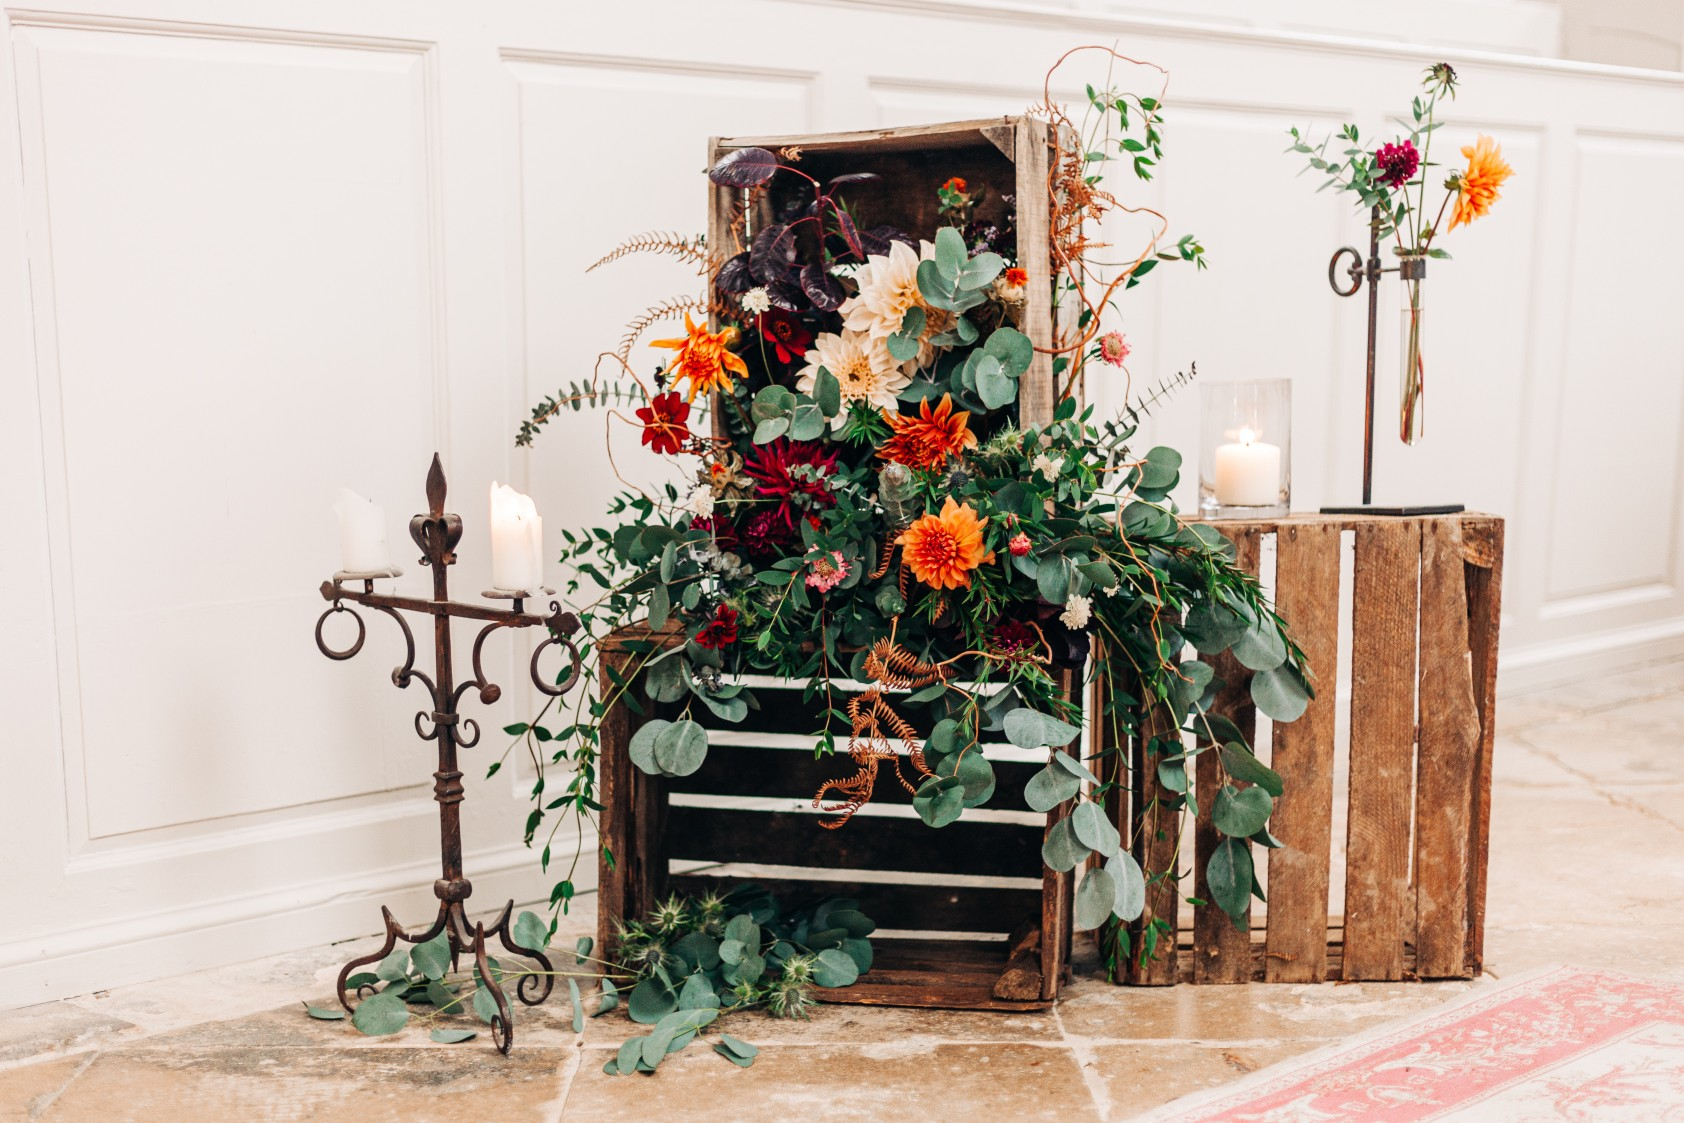 alternative wedding styling - autumn wedding flowers - edgy wedding styling